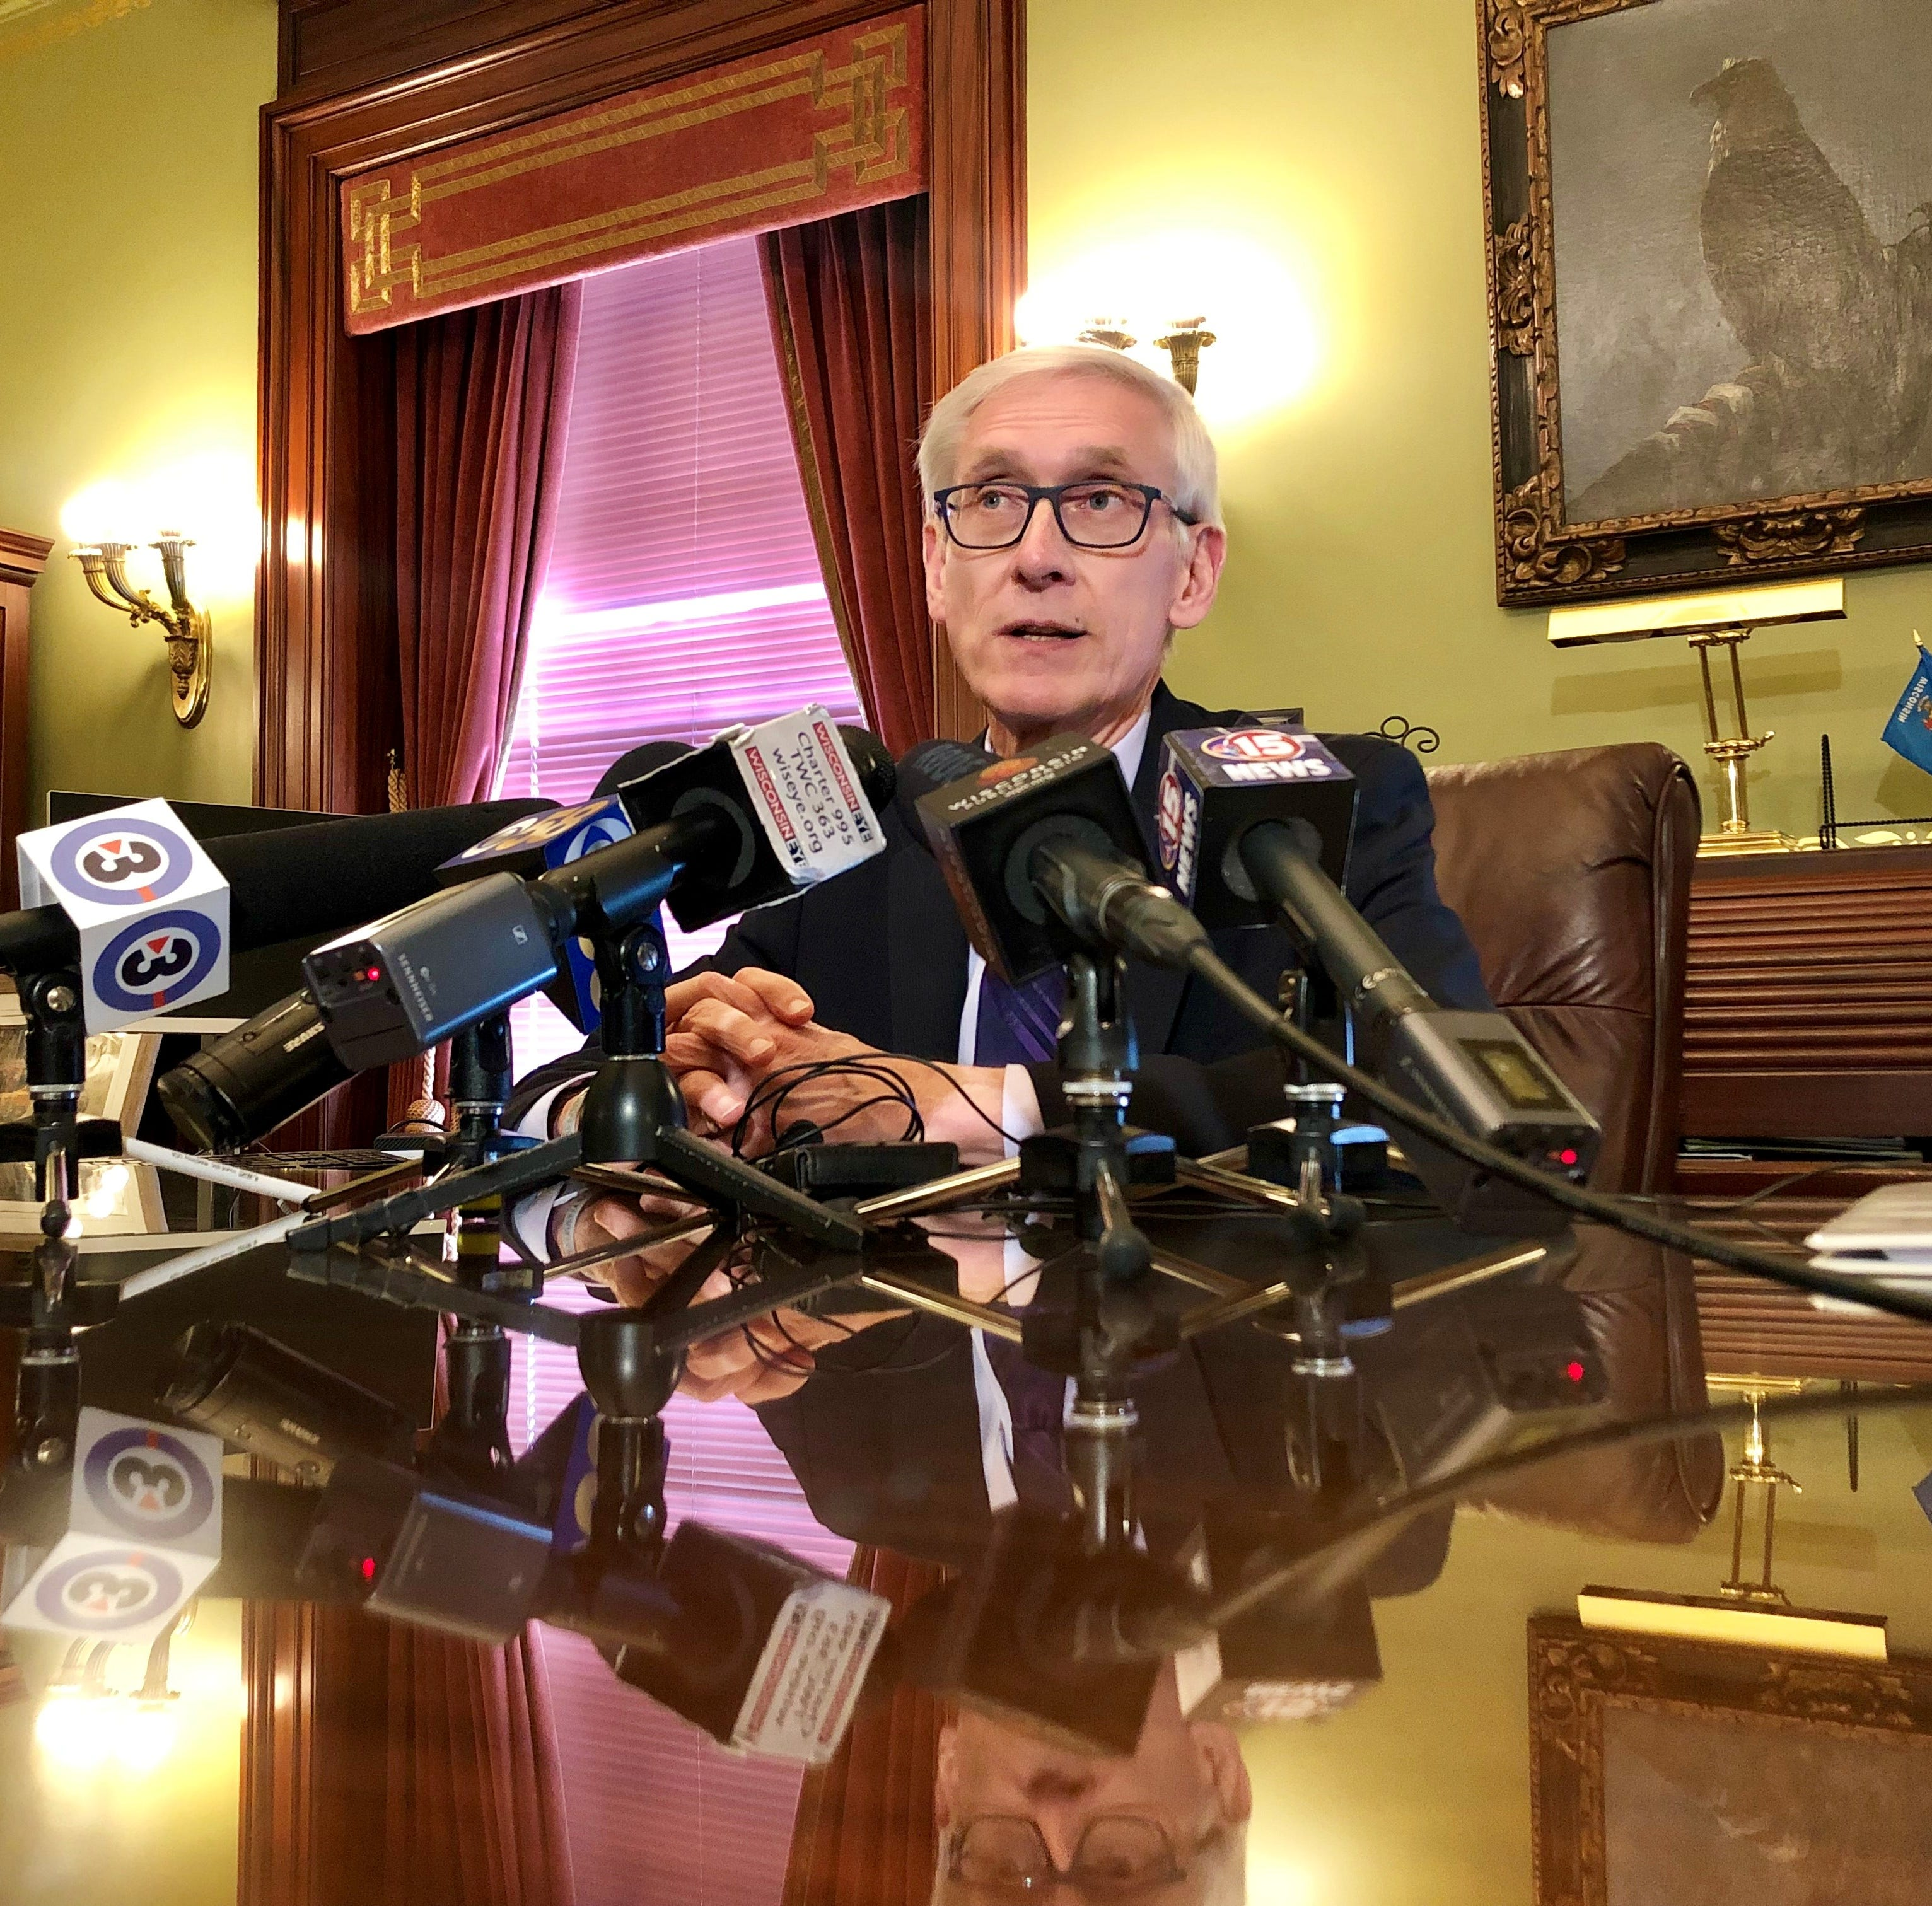 Tony Evers, Josh Kaul move to exit Obamacare lawsuit after judge blocks GOP lame-duck laws